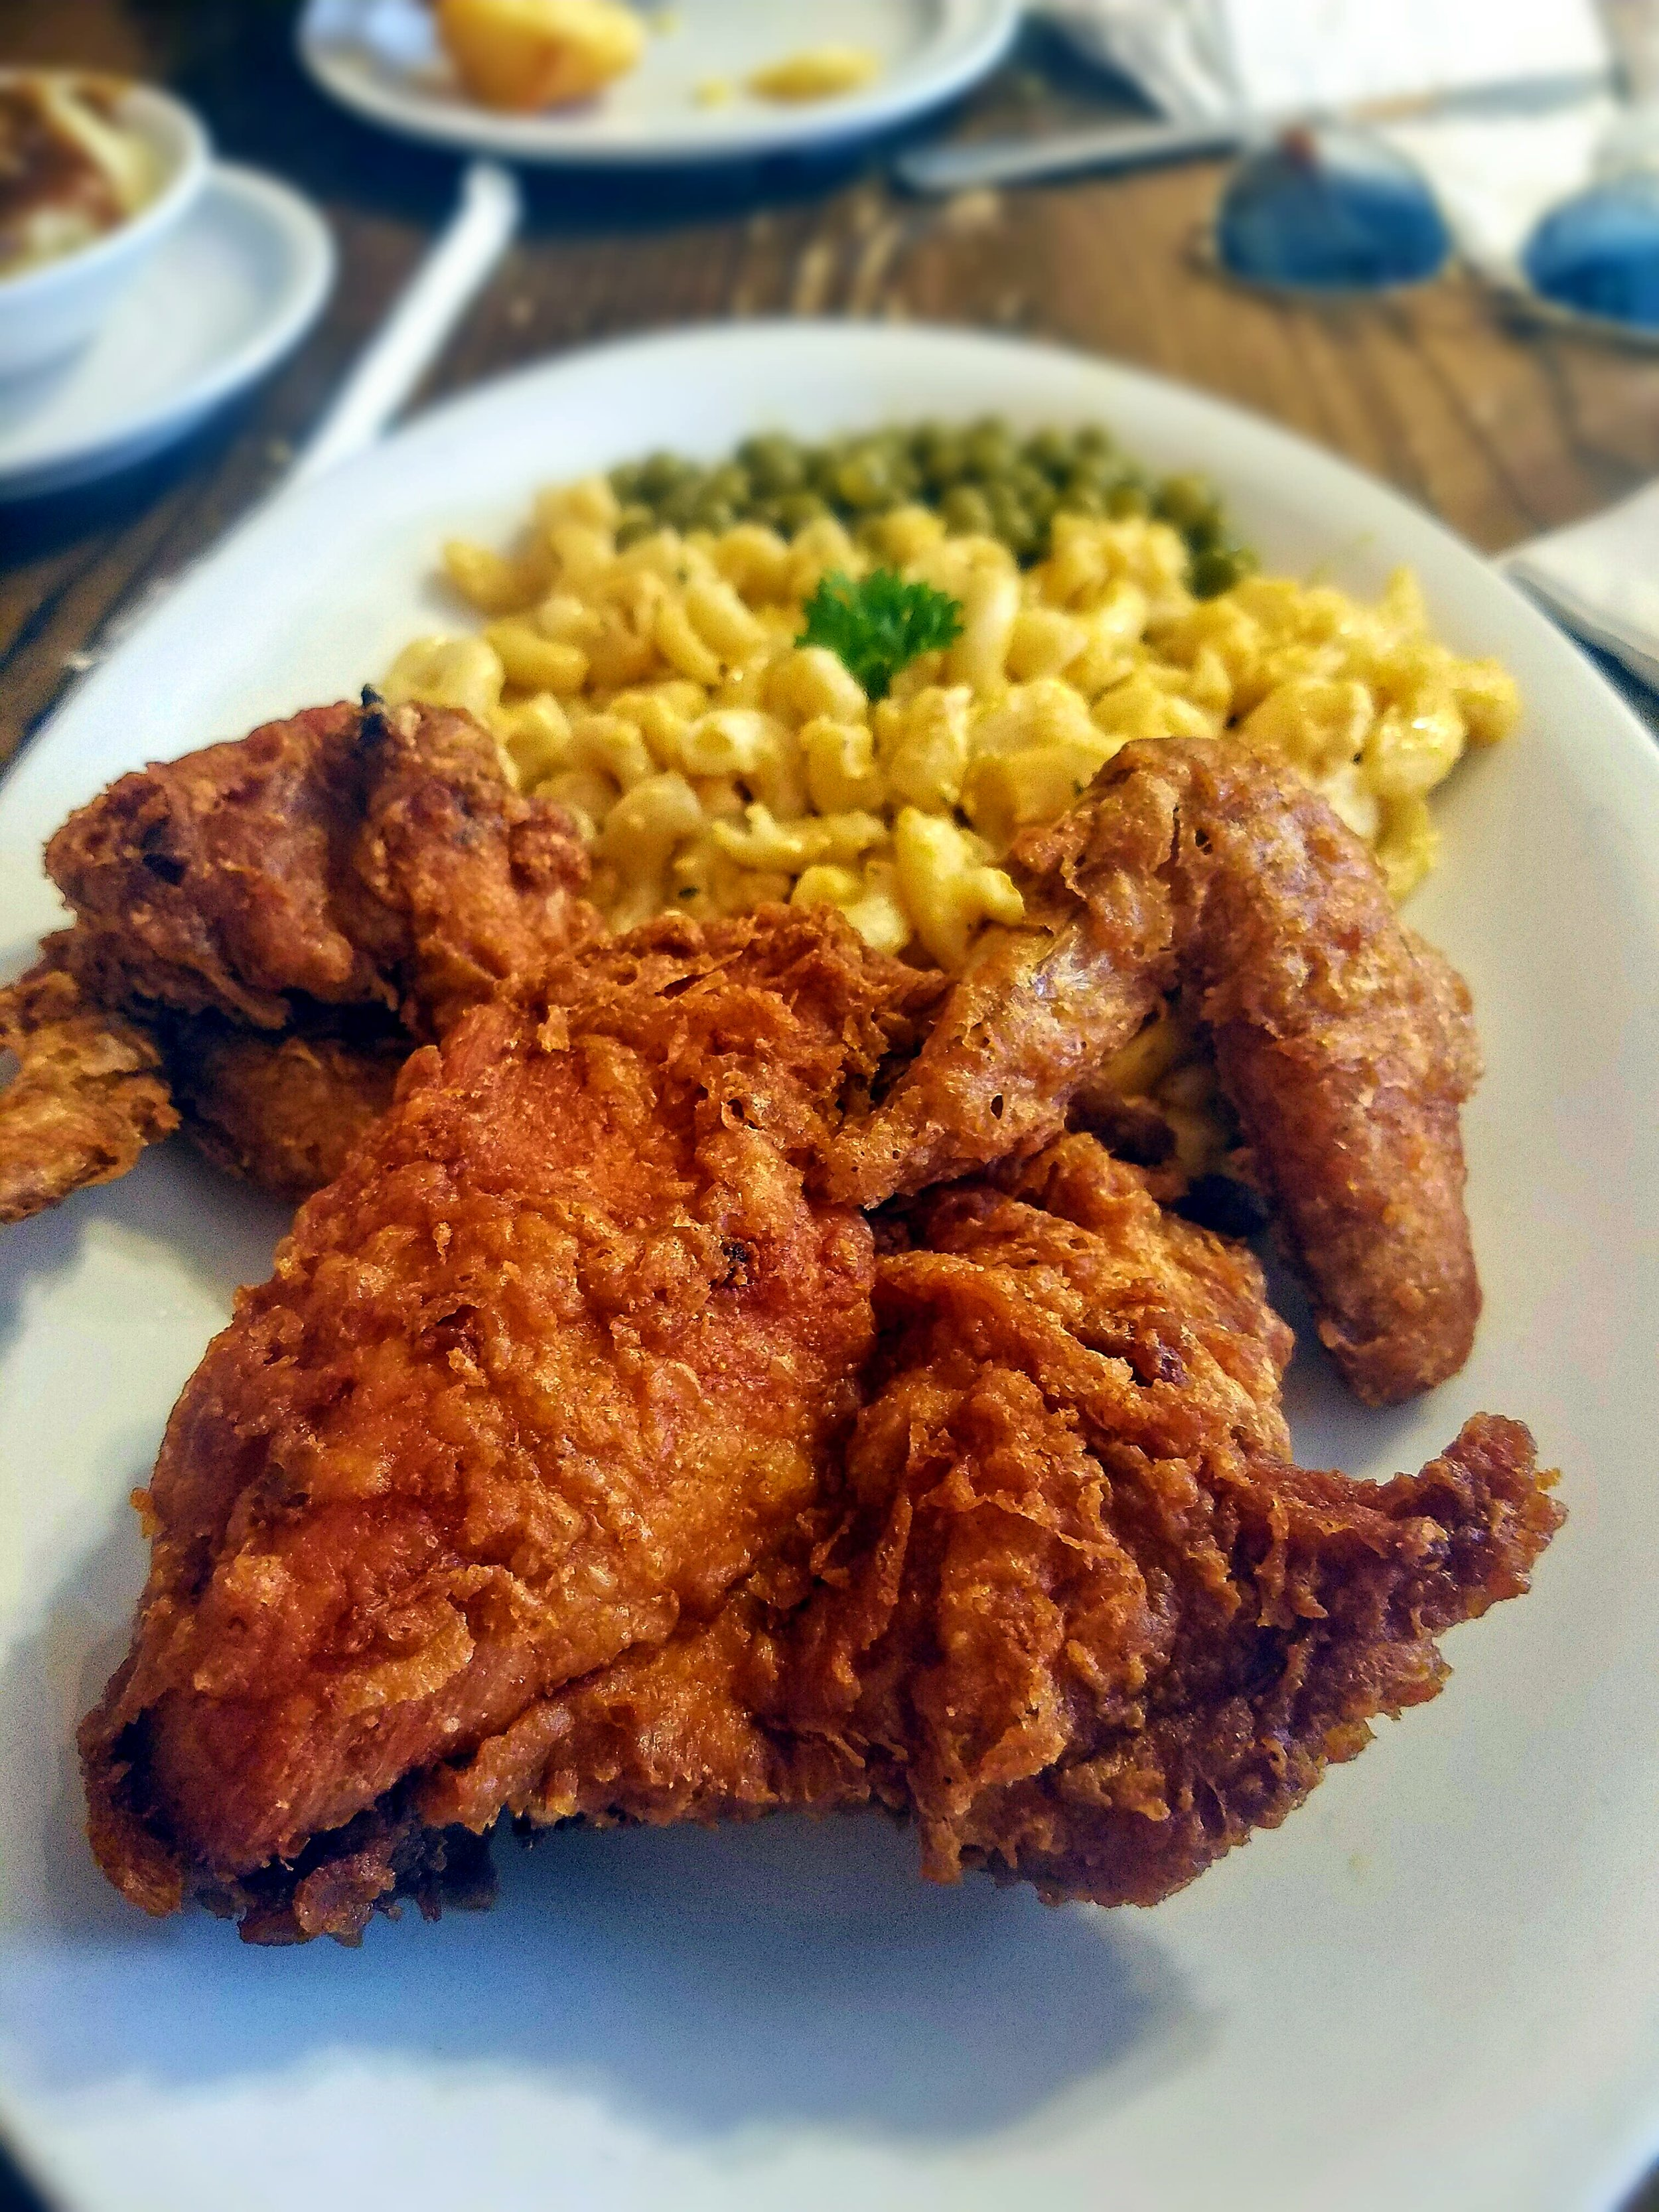 Willie Mae's Fried Chicken served with Mac & Cheese and Sweet Peas